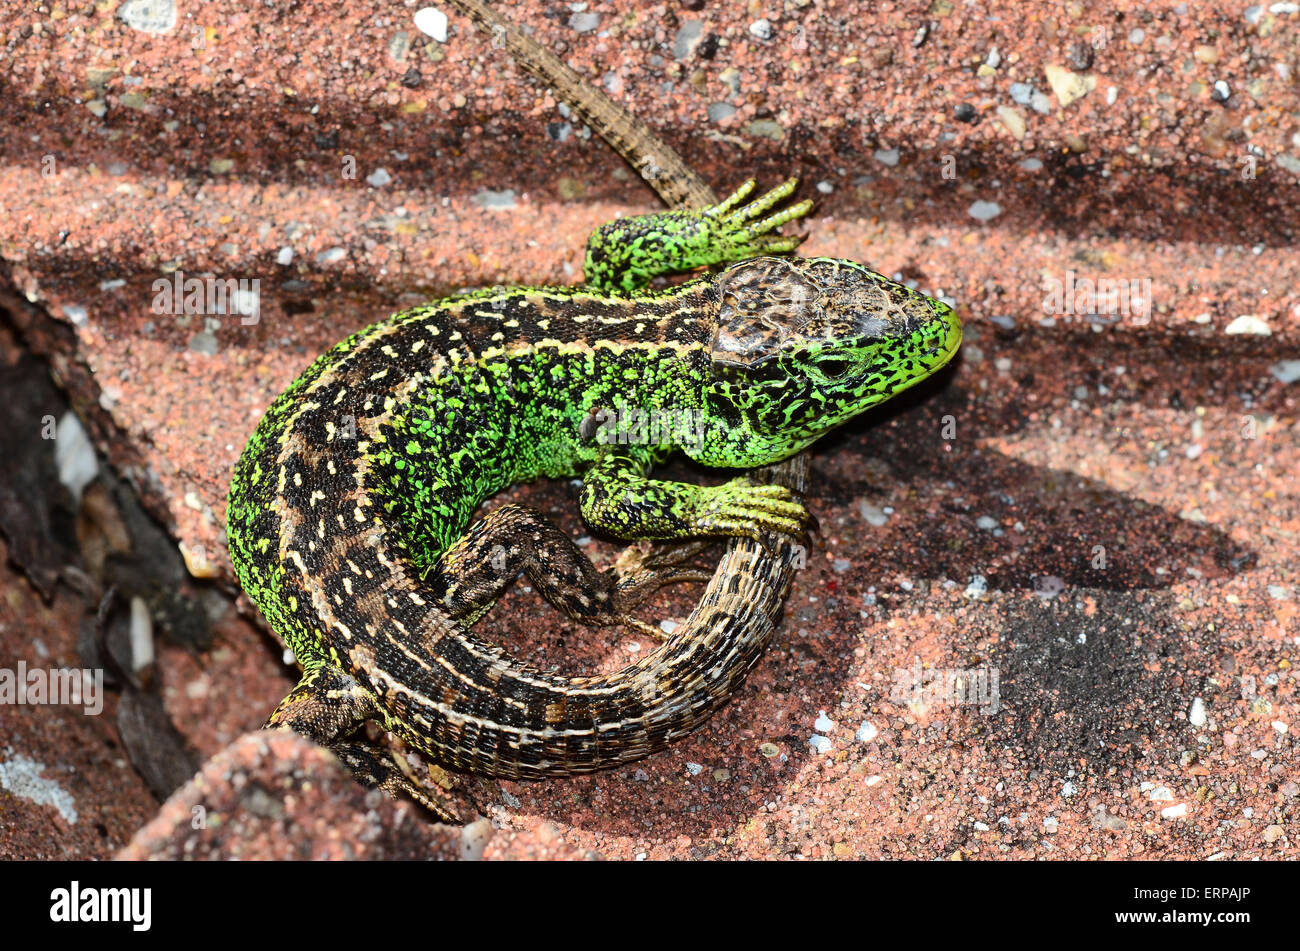 A curvled up sand lizard  Dorset UK - Stock Image